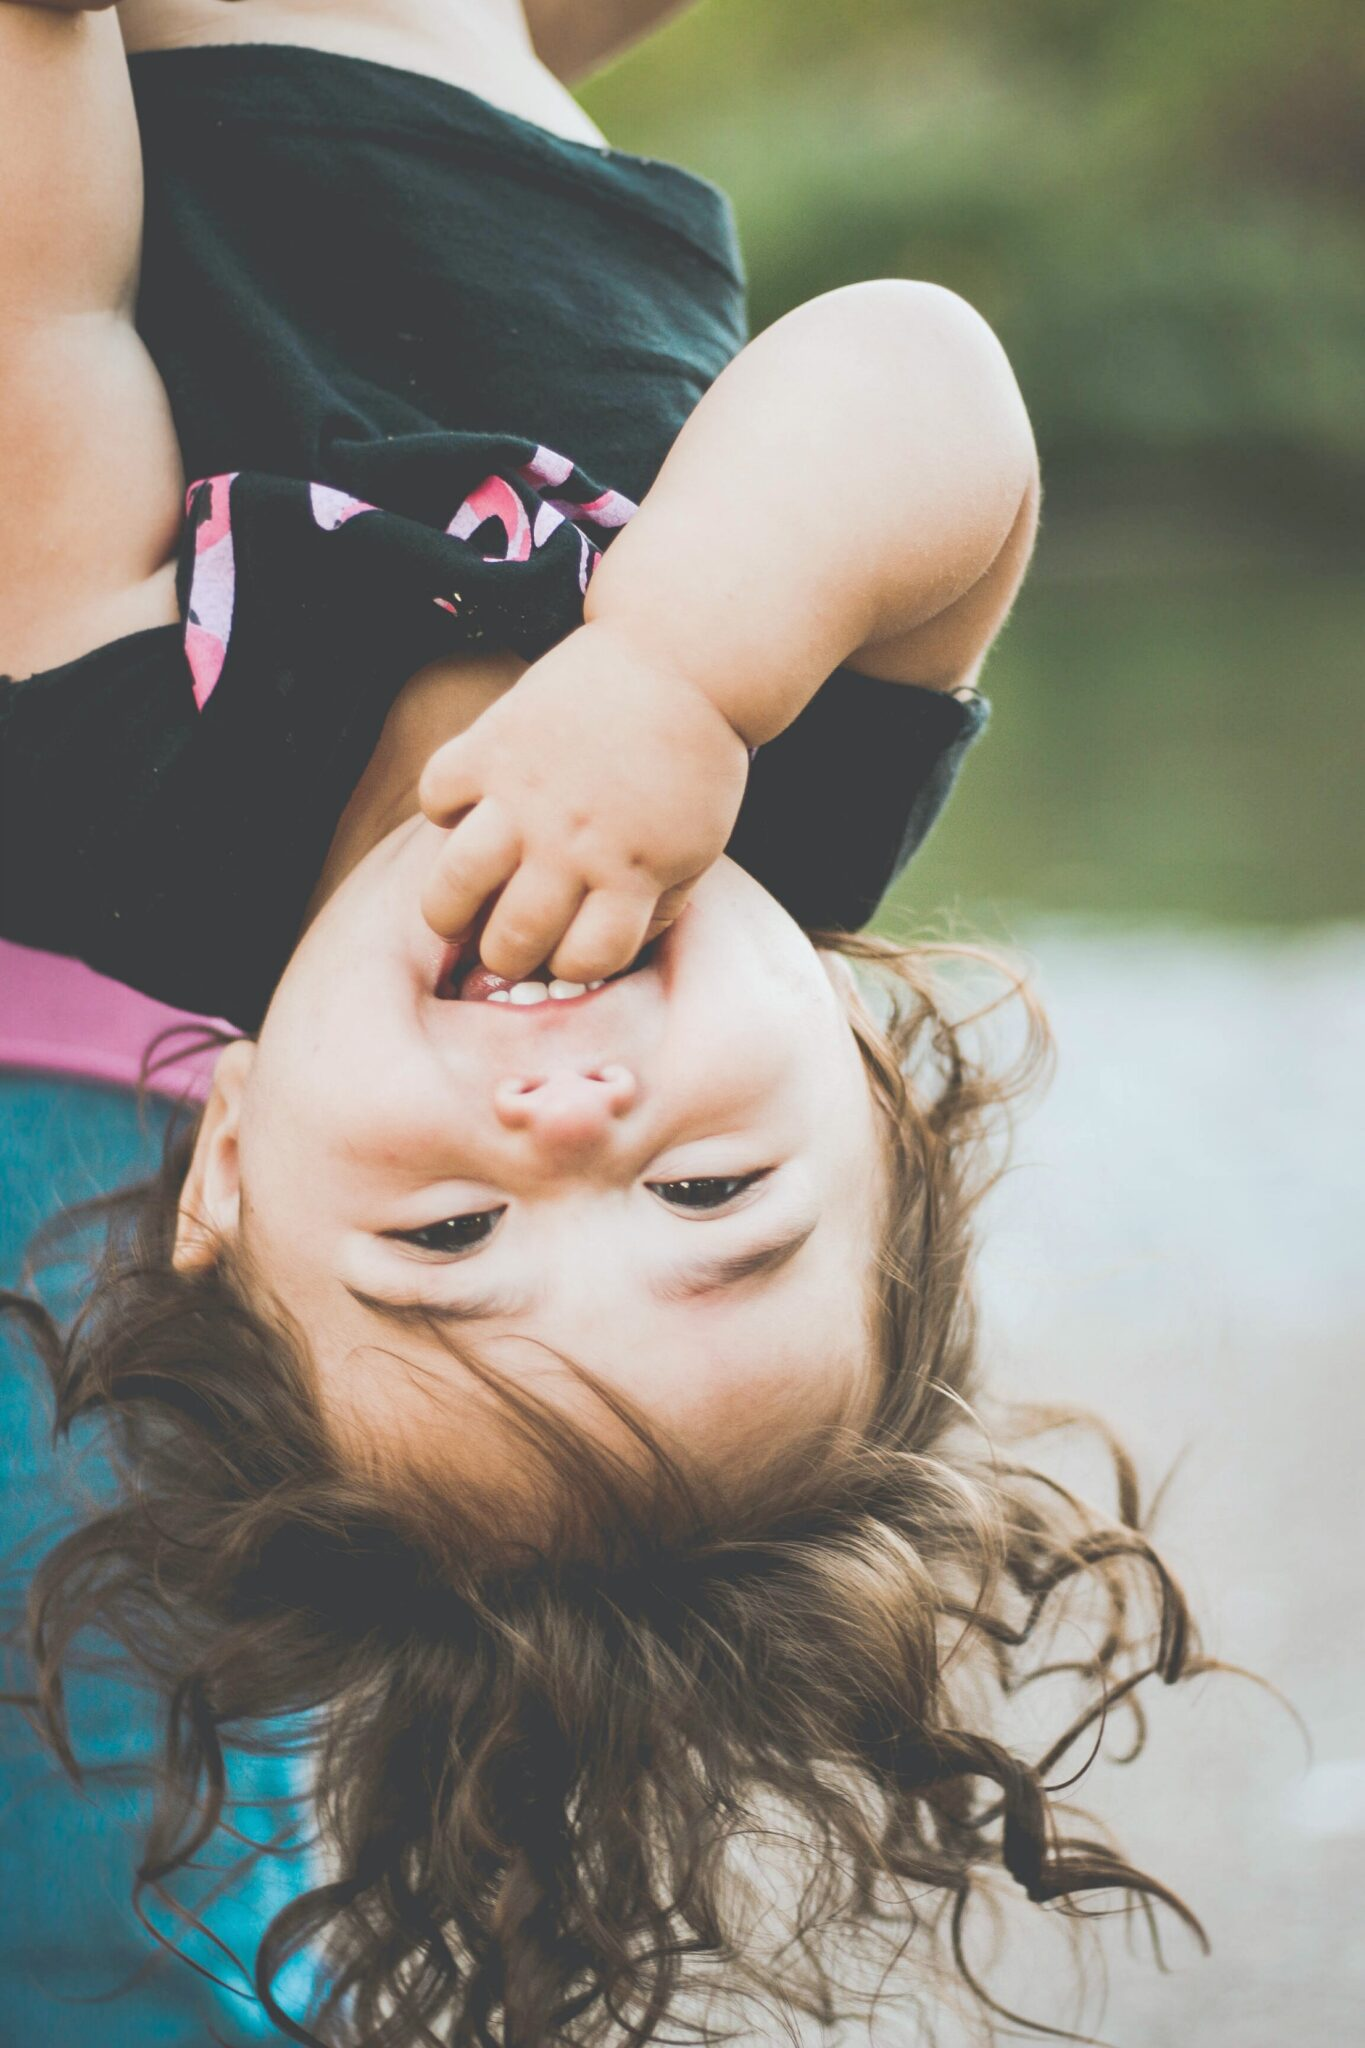 A child is hanging upside down.